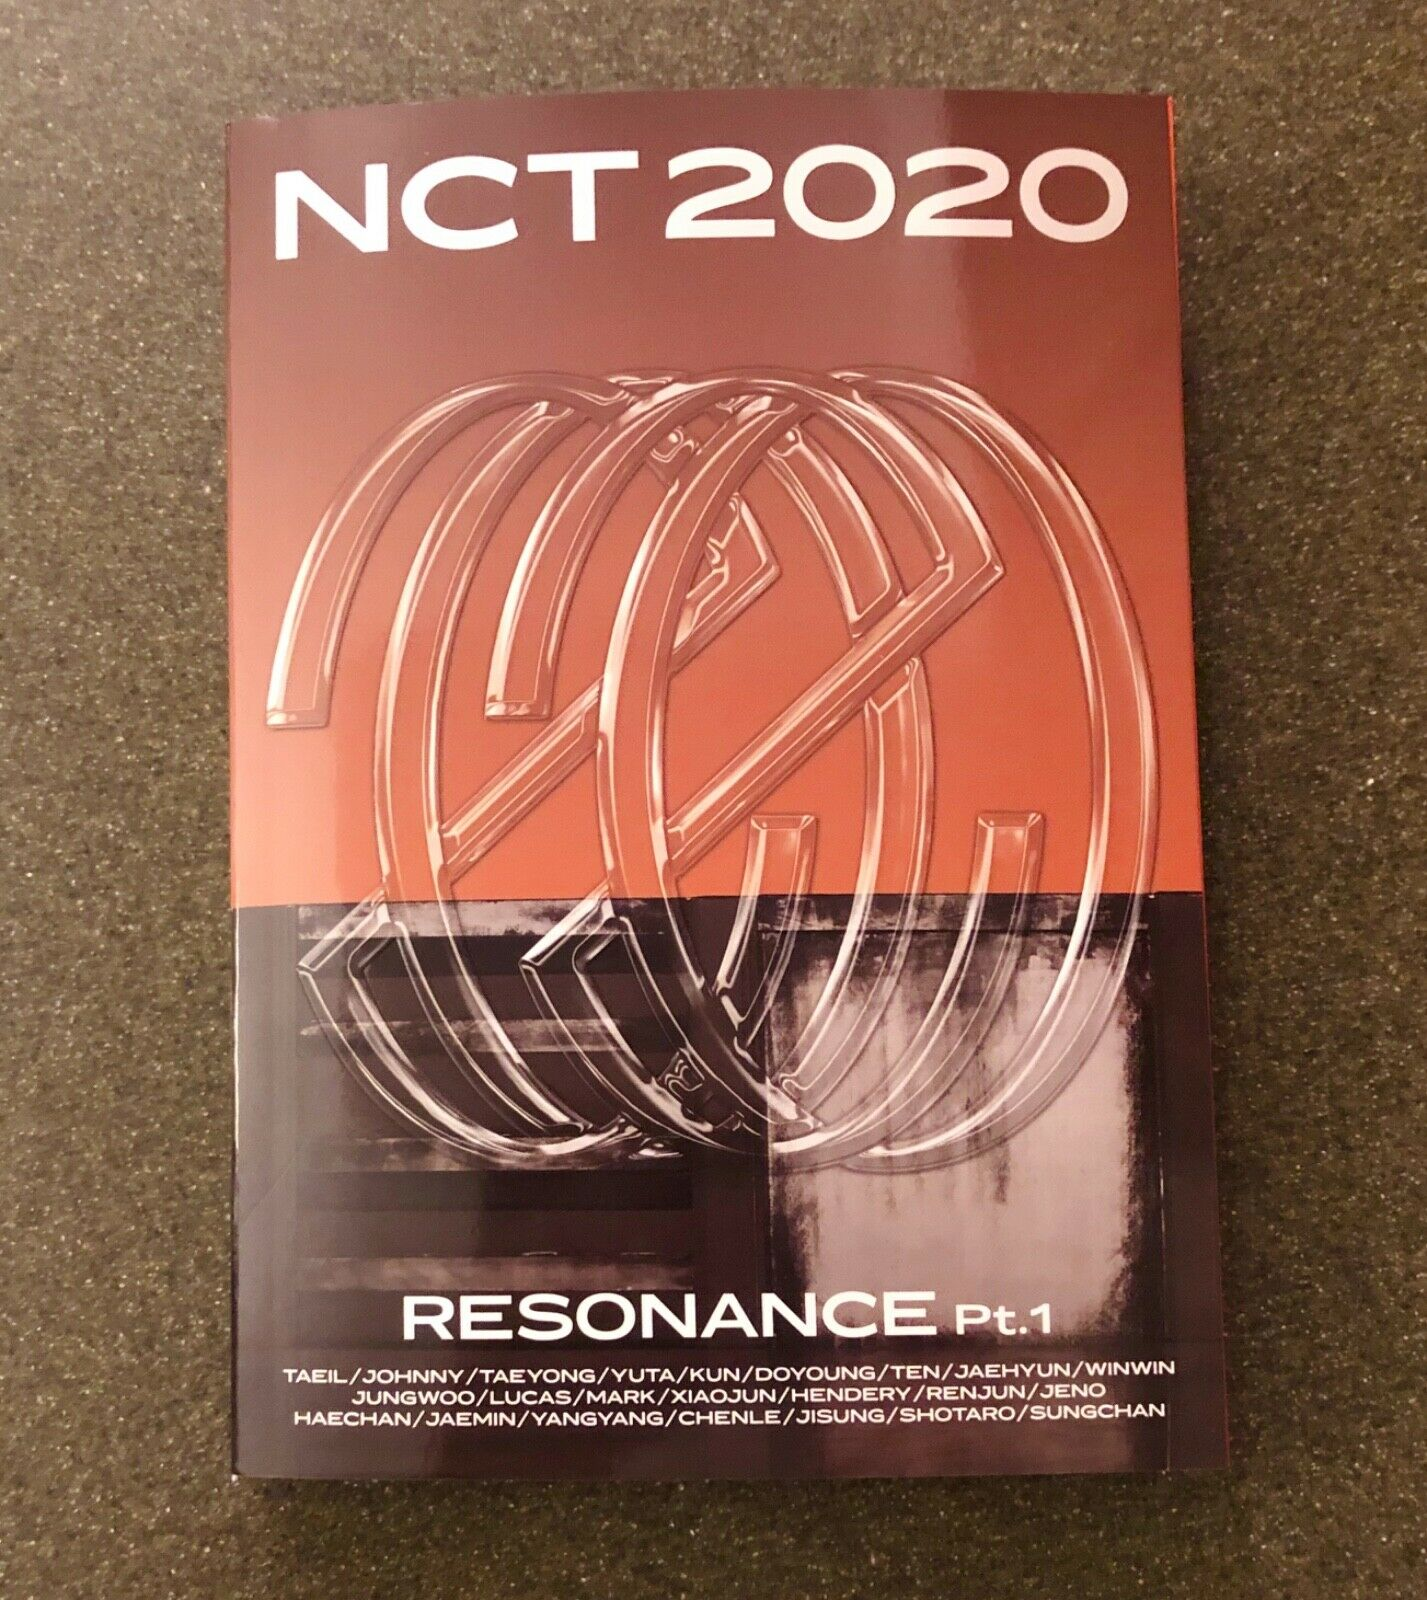 NCT 2020 Resonance The Future Ver. With No Photocard No Poster - $8.99